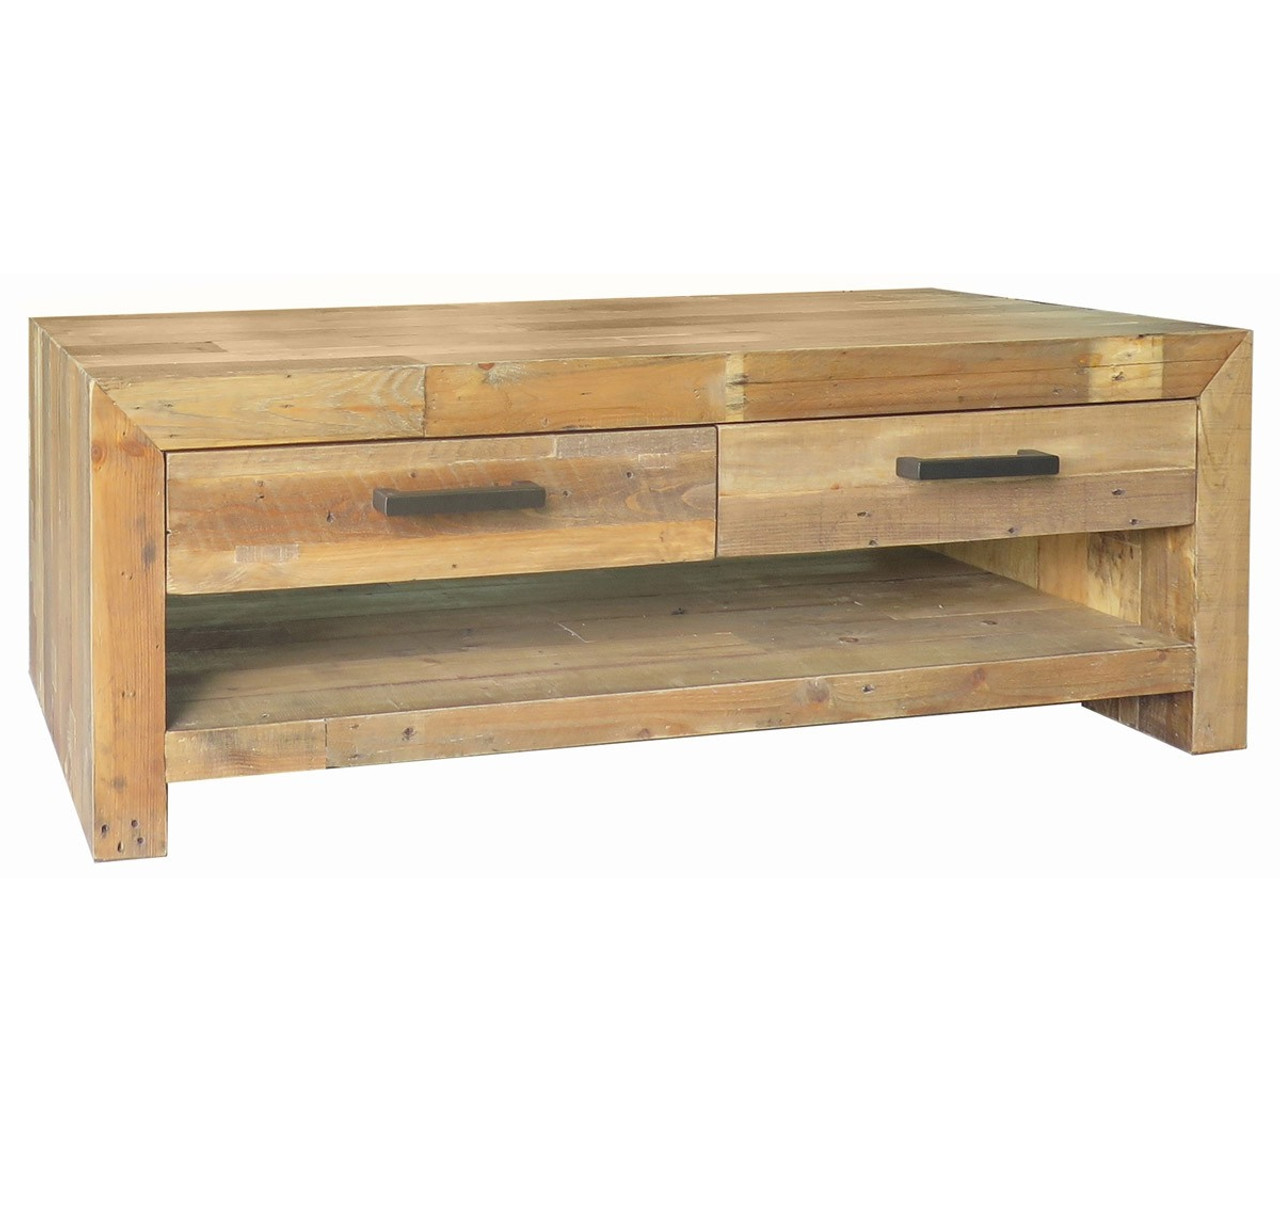 Angora natural reclaimed wood 4 drawer coffee table zin home angora natural reclaimed wood 4 drawer coffee table geotapseo Image collections